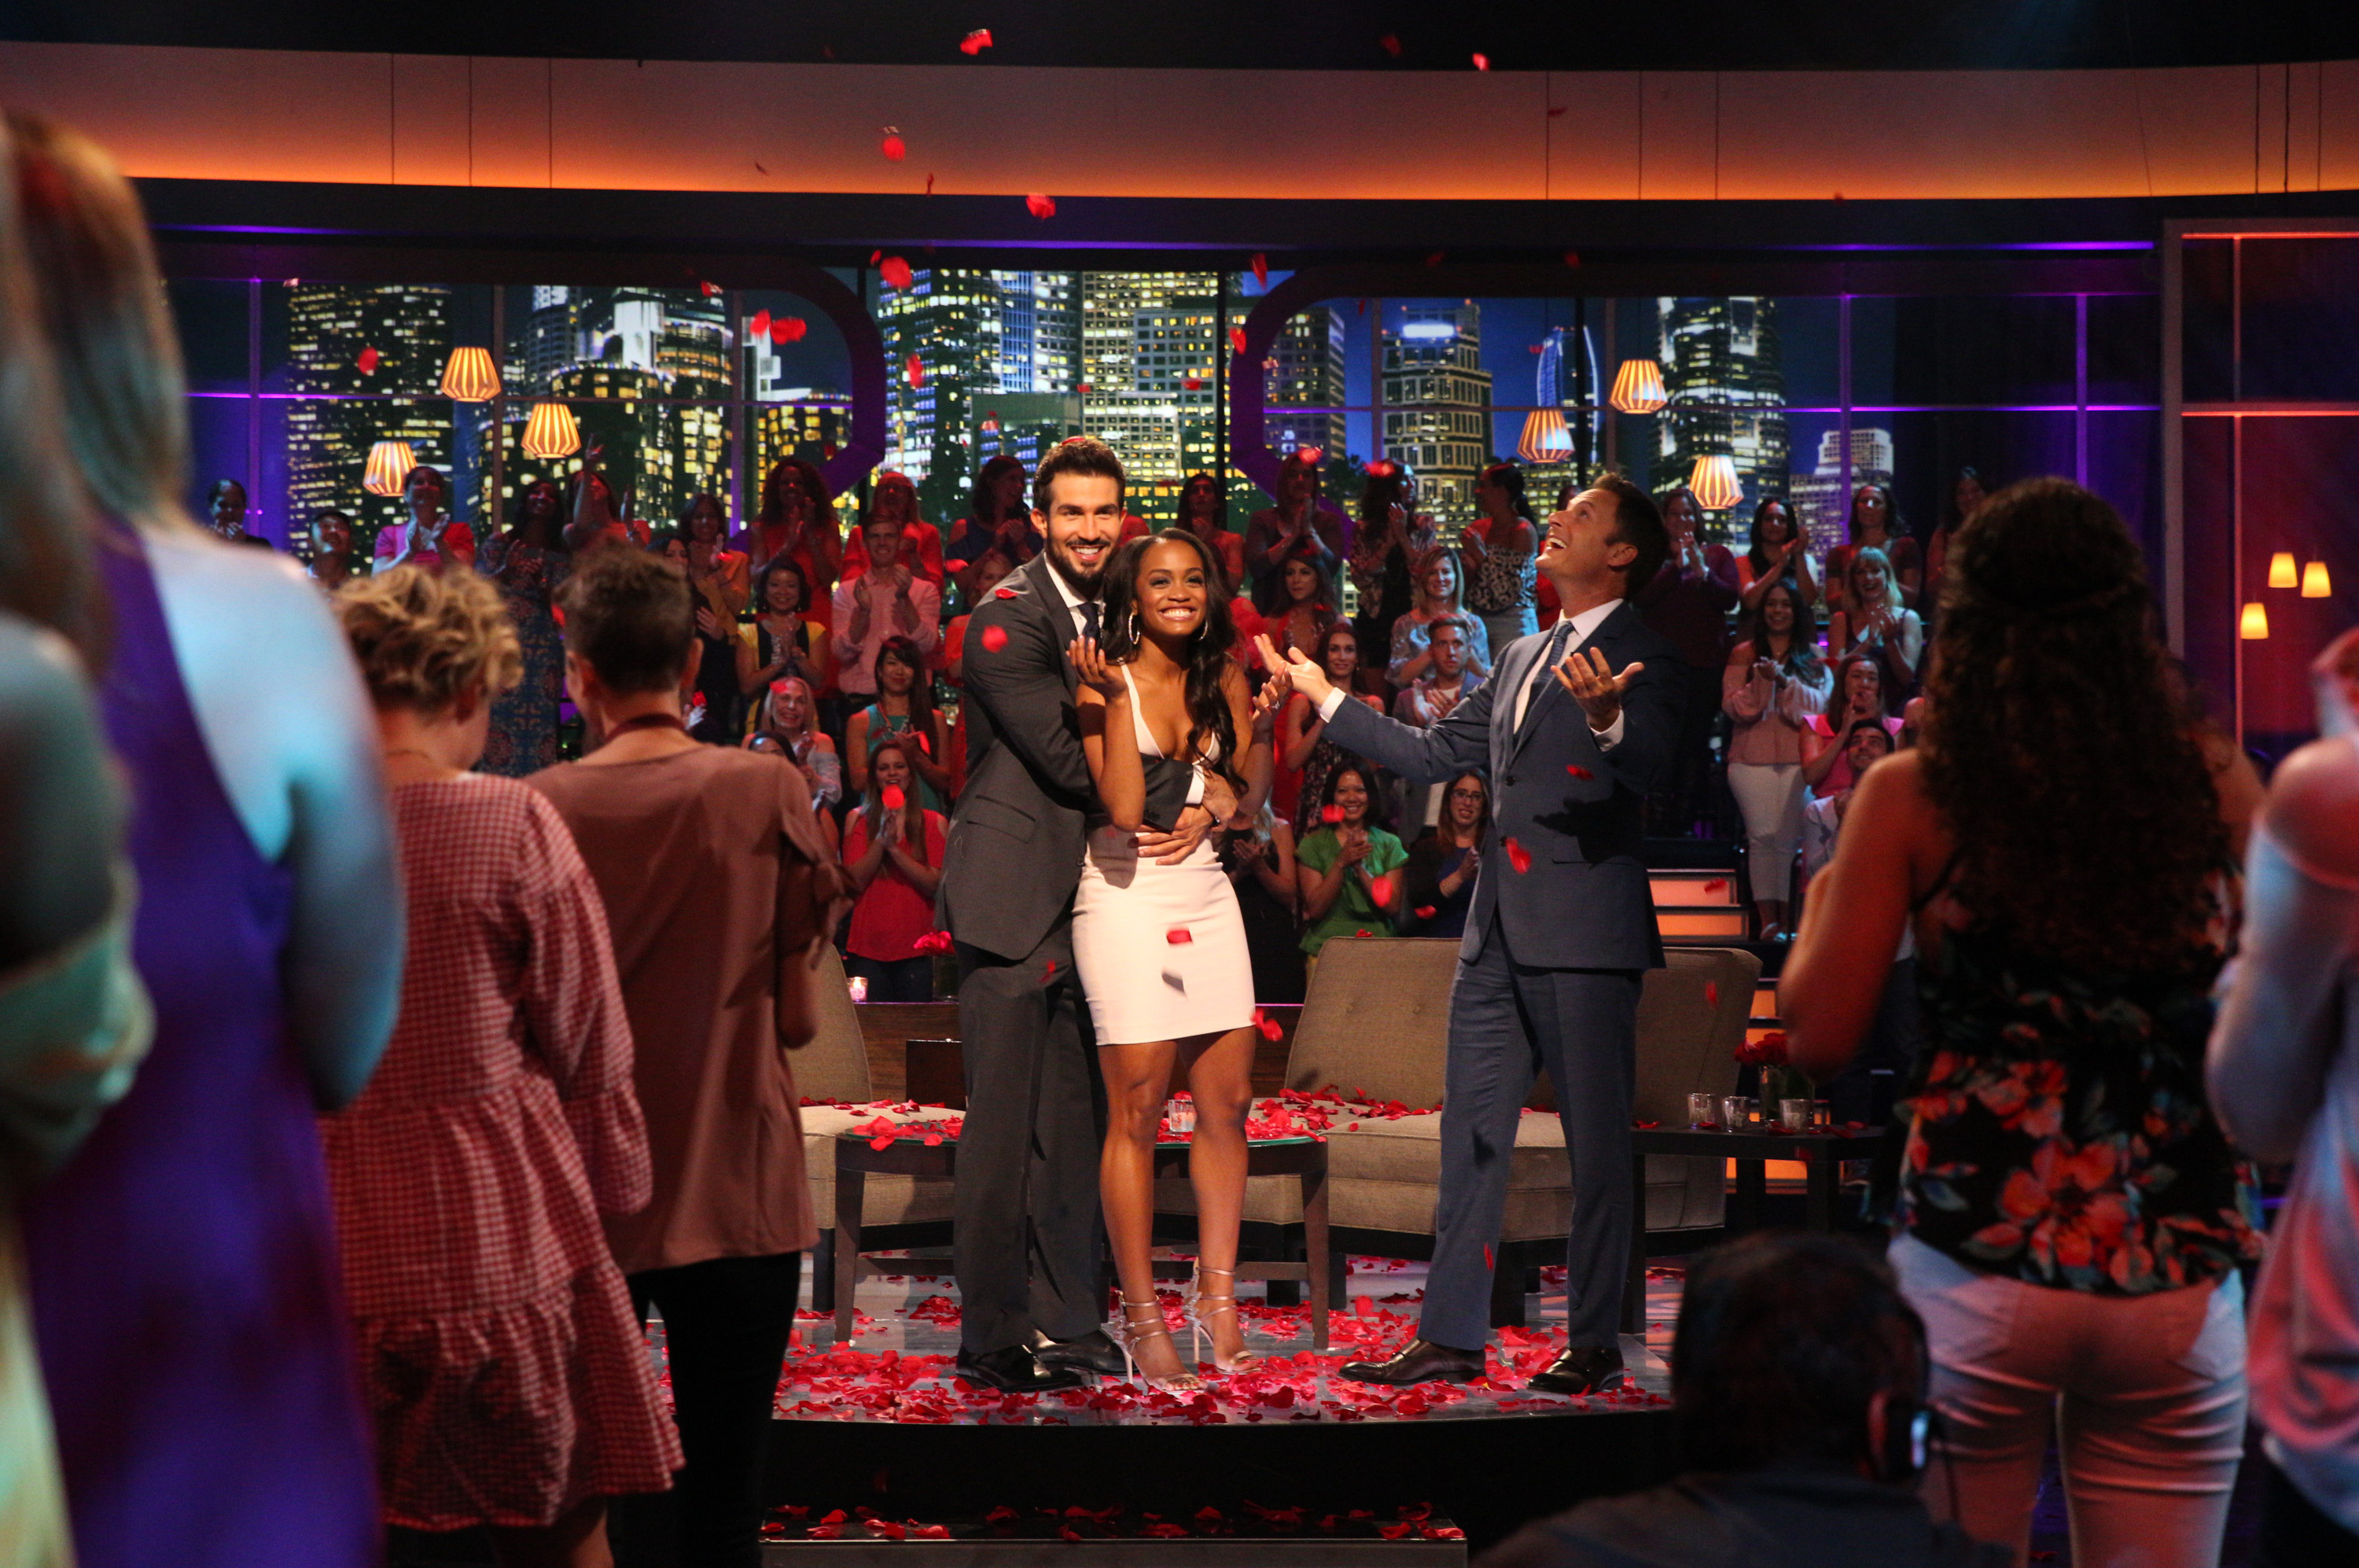 THE BACHELORETTE - ÒEpisode 1310Ó - Season Finale - It didnÕt take long for Rachel Lindsay to rebound from her surprising, gut-wrenching rejection by Nick Viall and capture the hearts of America, as well as this seasonÕs 31 eligible bachelors. Now after surviving shocking twists and turns and a journey filled with laughter, tears, love and controversy, Rachel has narrowed down the field to Bryan, Eric and Peter. She finds herself falling in love with all three of these captivating men and terribly torn between them. She can envision a future with all of these bachelors, but time is running out. In a live, three-hour special, Chris Harrison takes Rachel and Bachelor Nation back to those final days in Rioja, Spain, to discuss the difficult choices she made along the way. Her three suitors will join them throughout the live special, on ÒThe Bachelorette: The Three Hour Live Finale,Ó airing MONDAY, AUGUST 7 (8:00-11:00 p.m. EDT), on The ABC Television Network. (ABC/Paul Hebert) BRYAN ABASOLO, RACHEL LINDSAY, CHRIS HARRISON